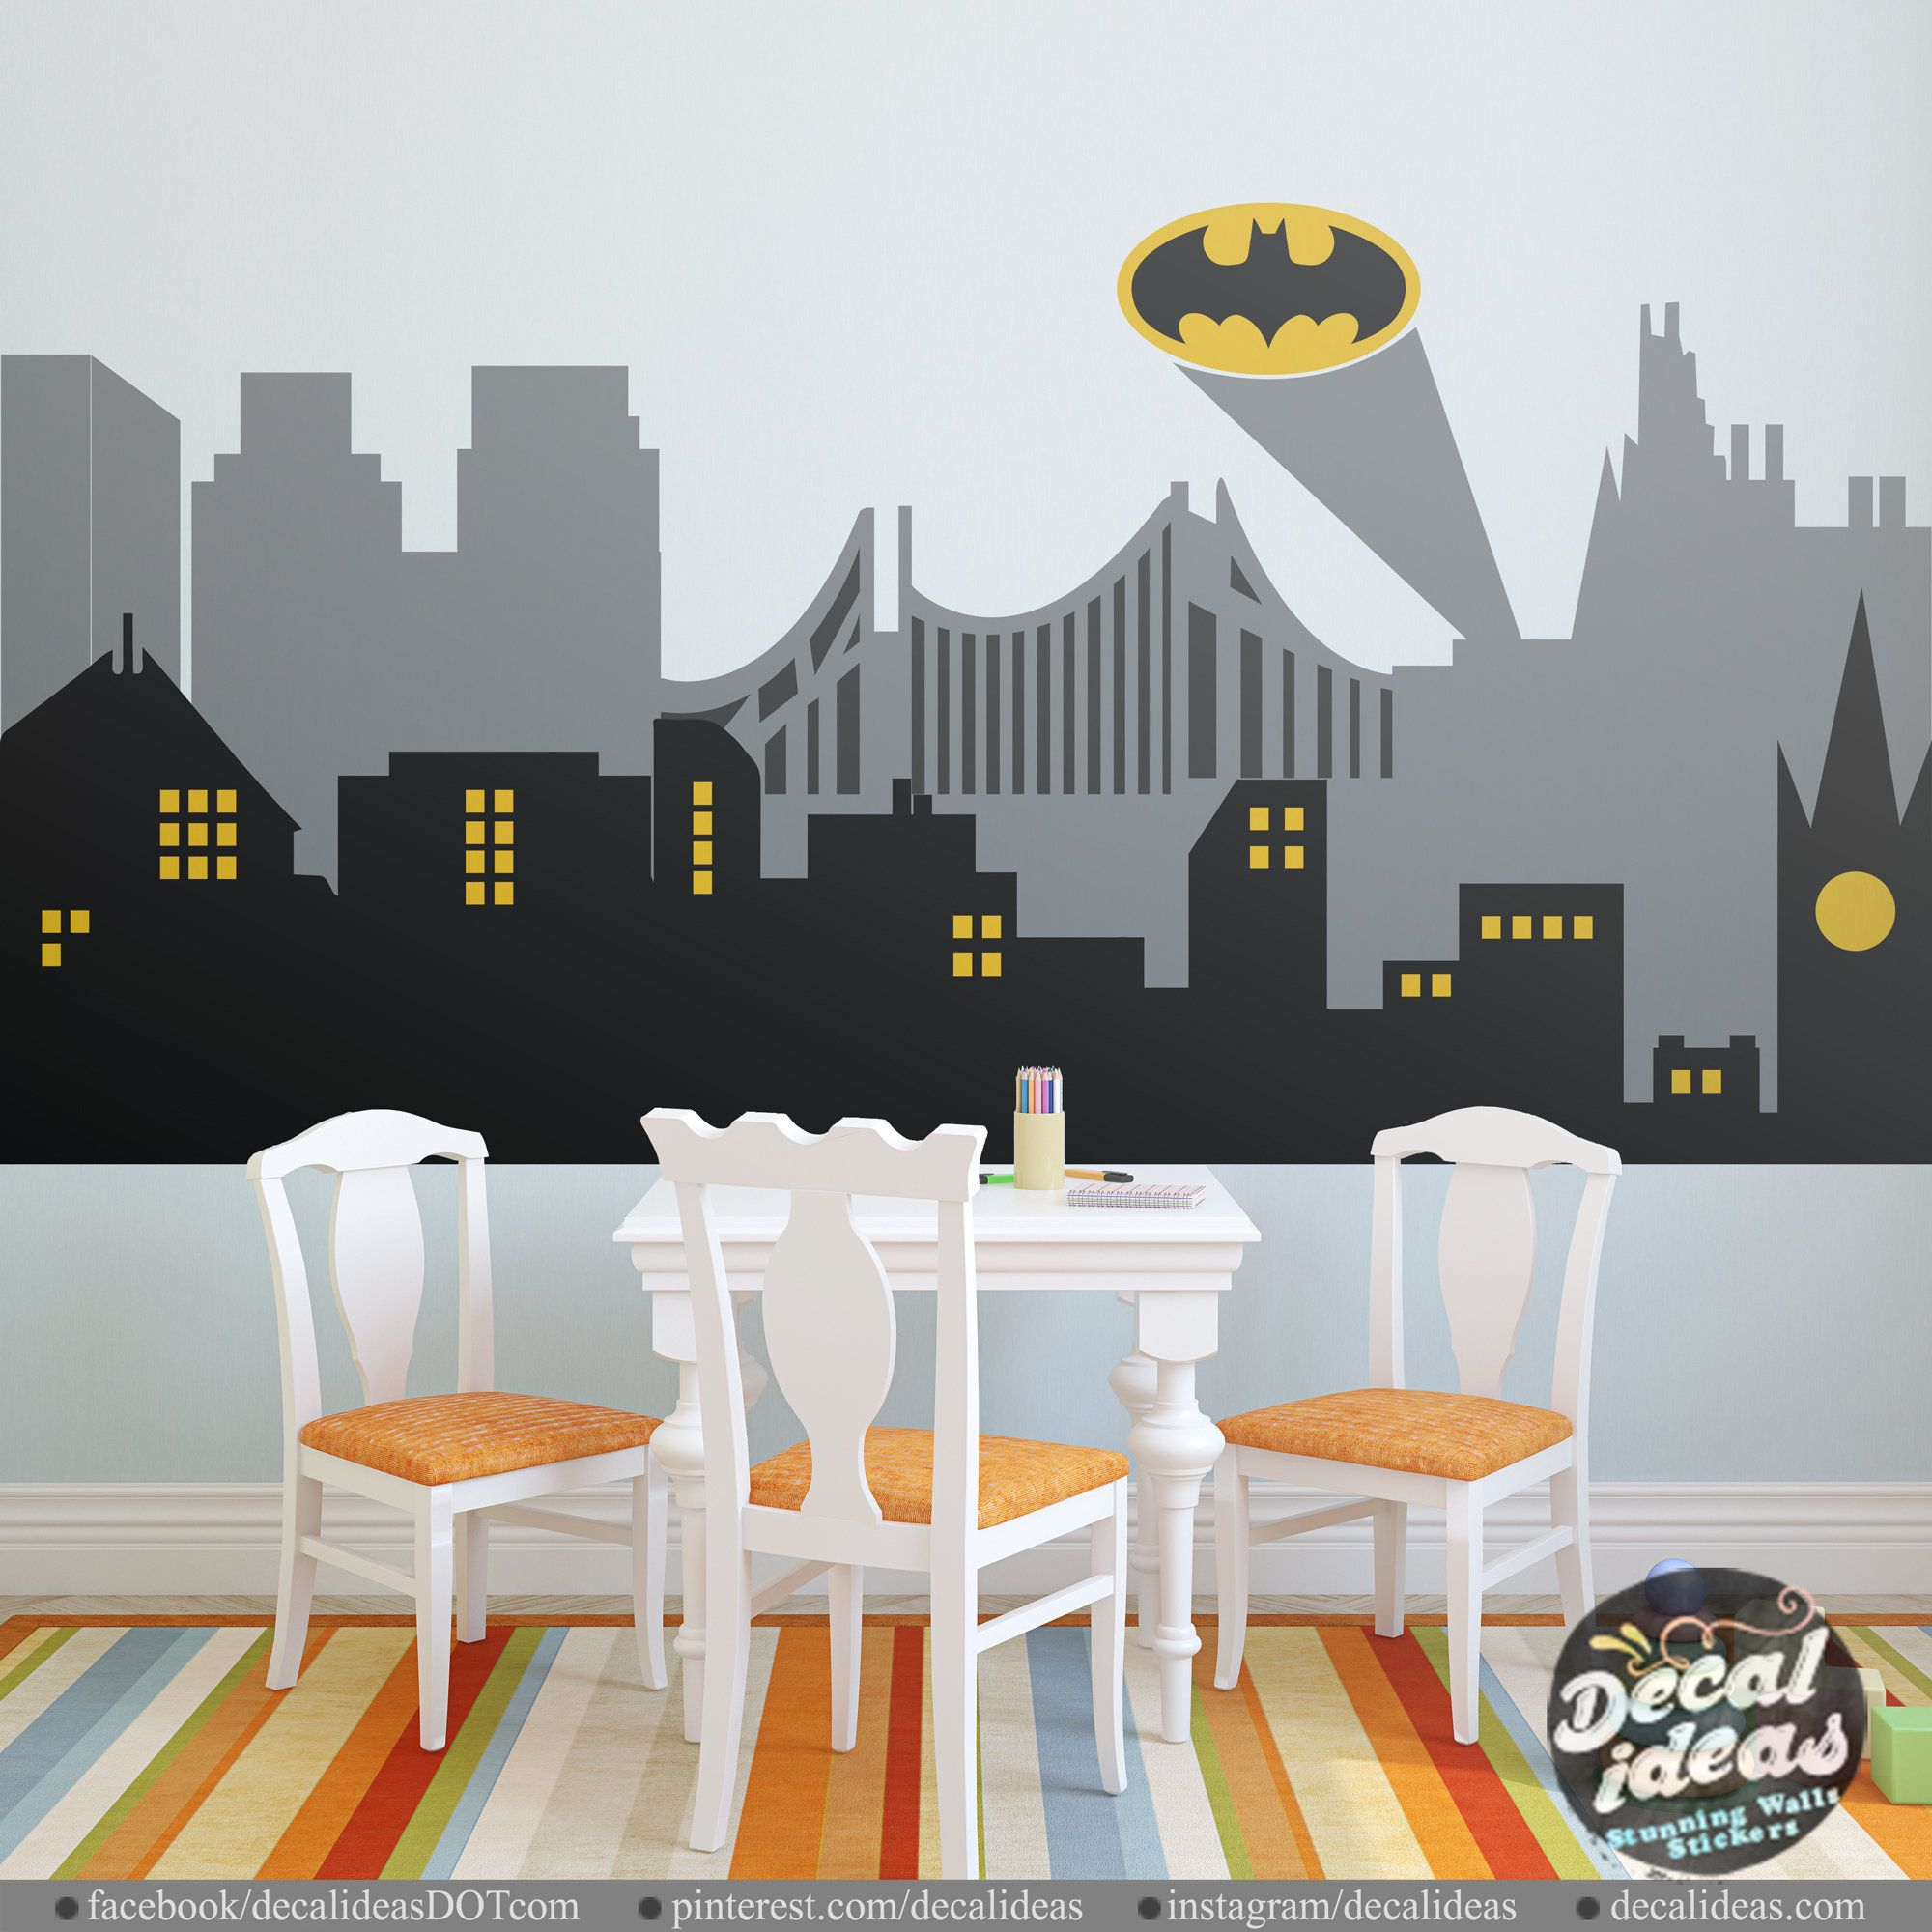 Superhero Wall Decals Batman Wall Decal Avengers Wall Decals Peel And Stick Wall Decals Printed Marvel Wall Superhero Wall Decals Superhero Wall Batman Wall